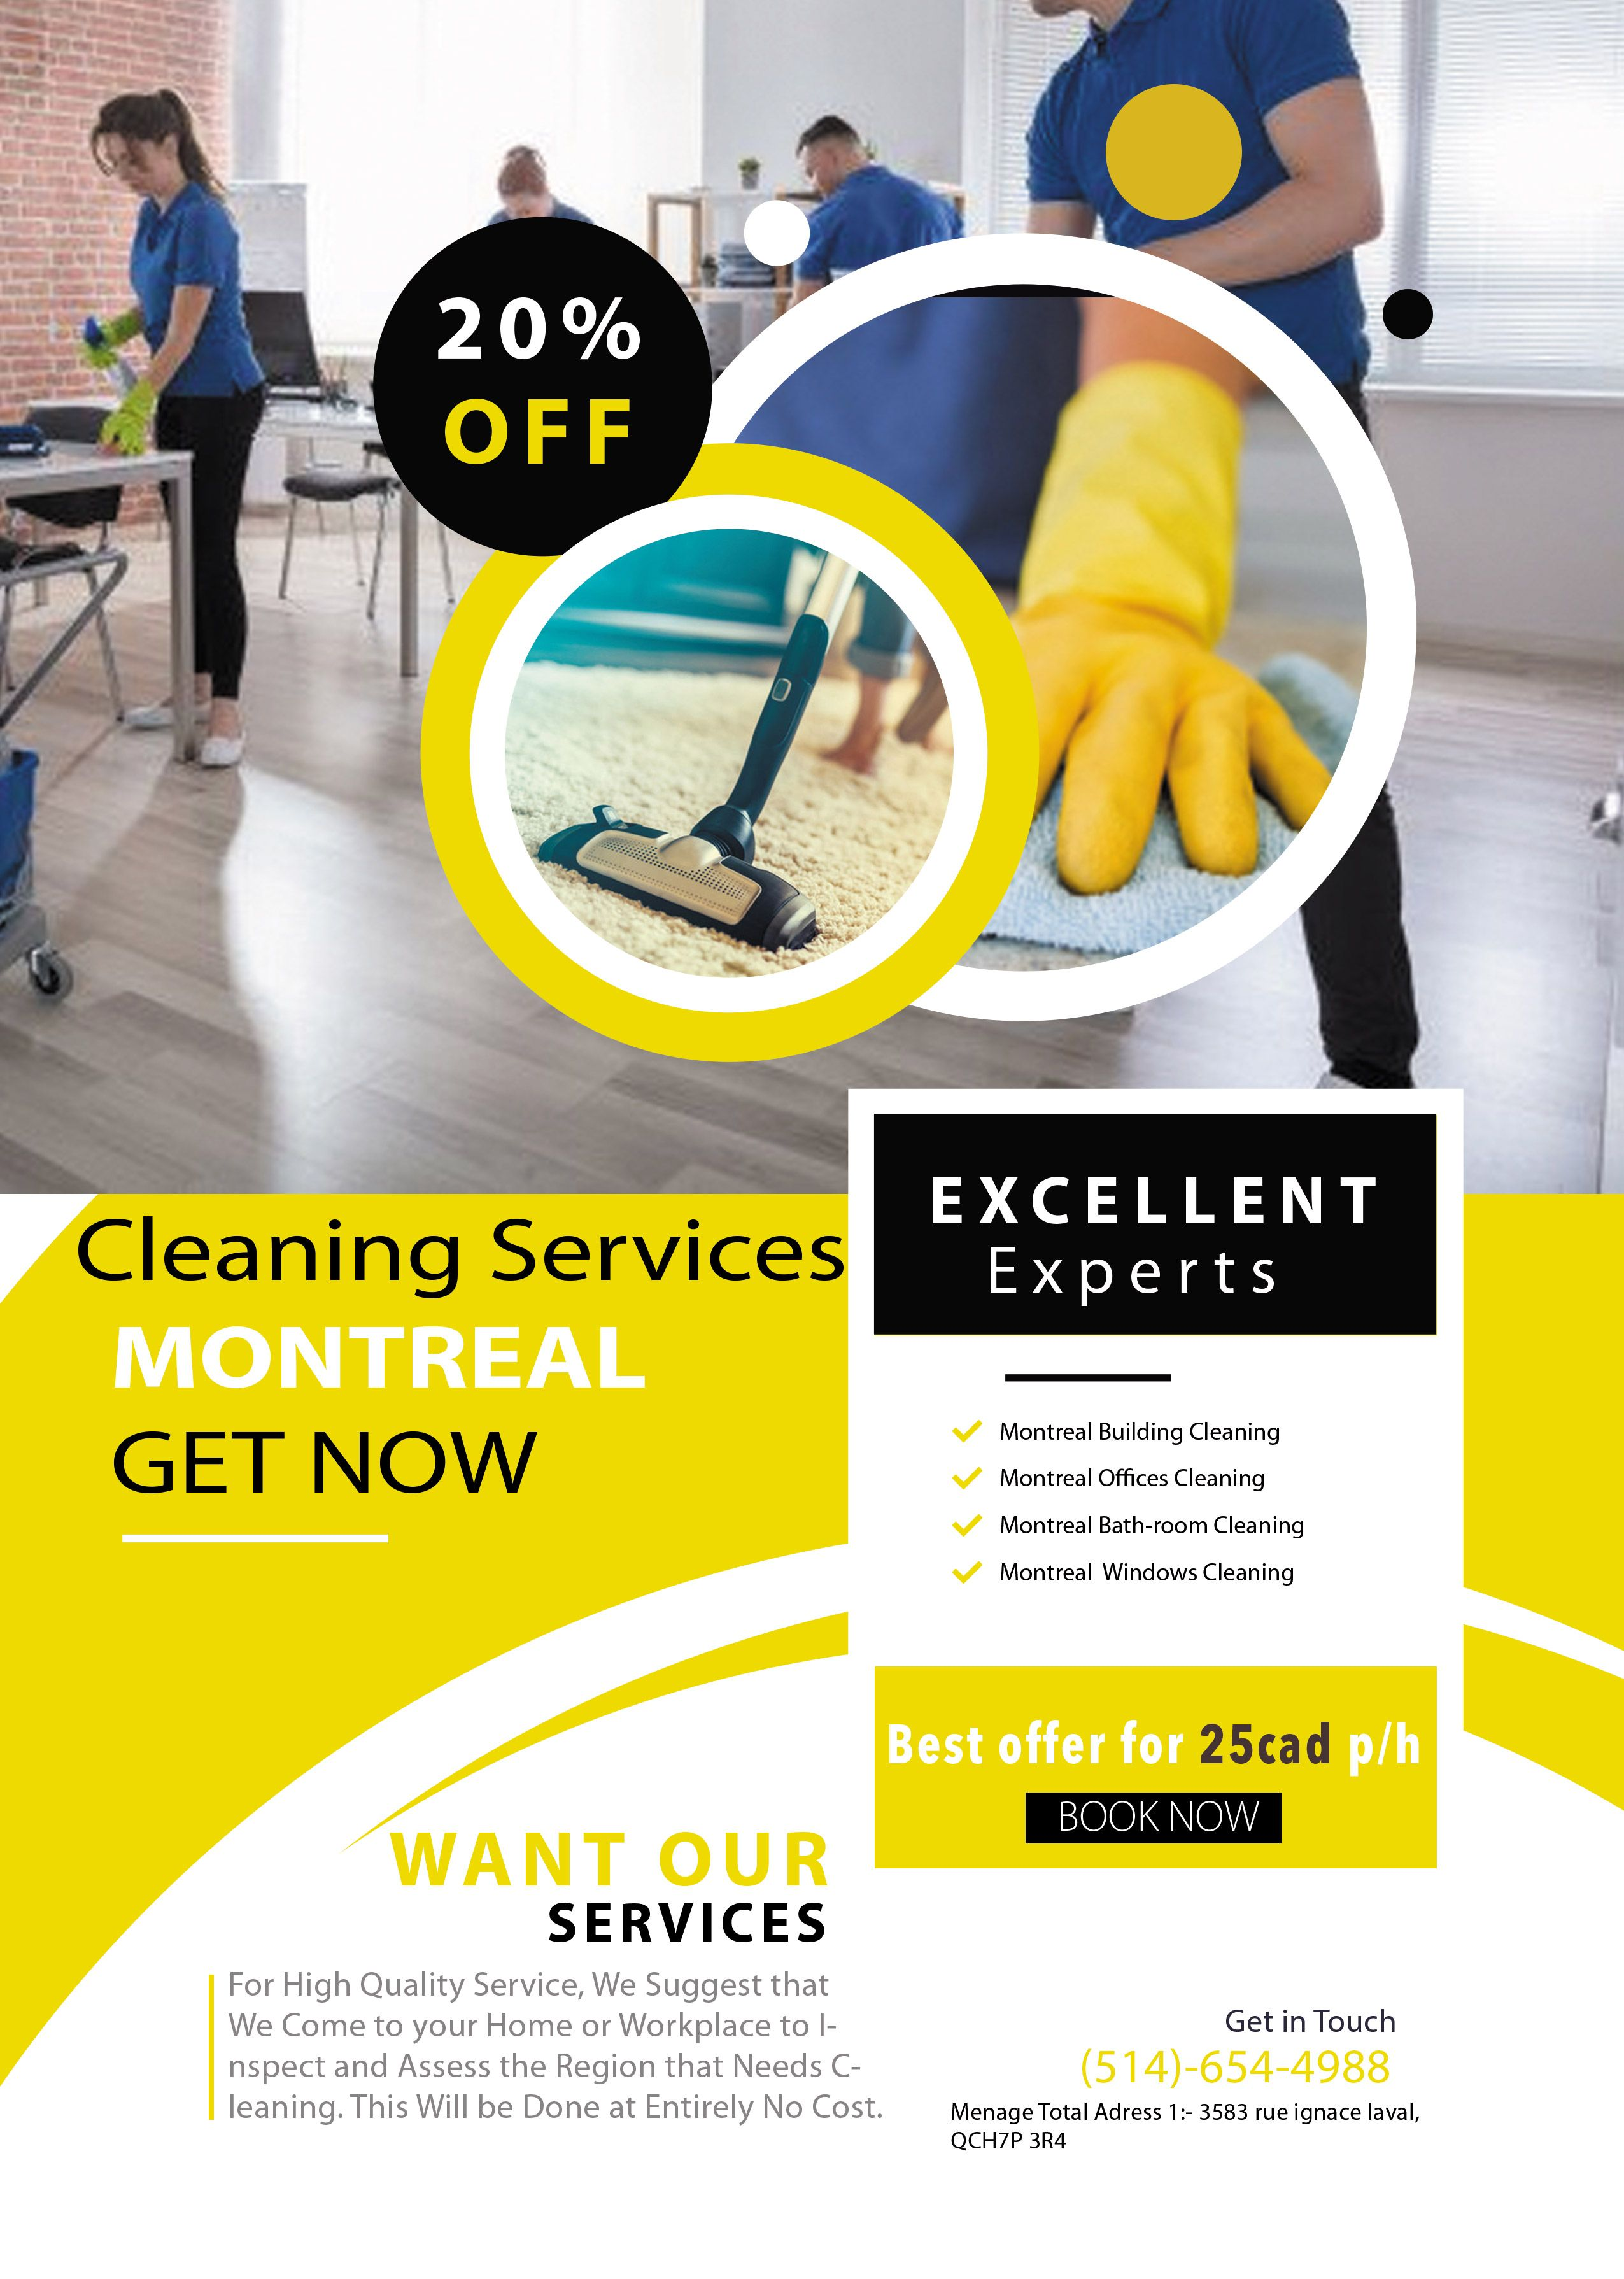 Cleaning Services Montreal Cleaning Service Soap Packaging Design Cleaning Business